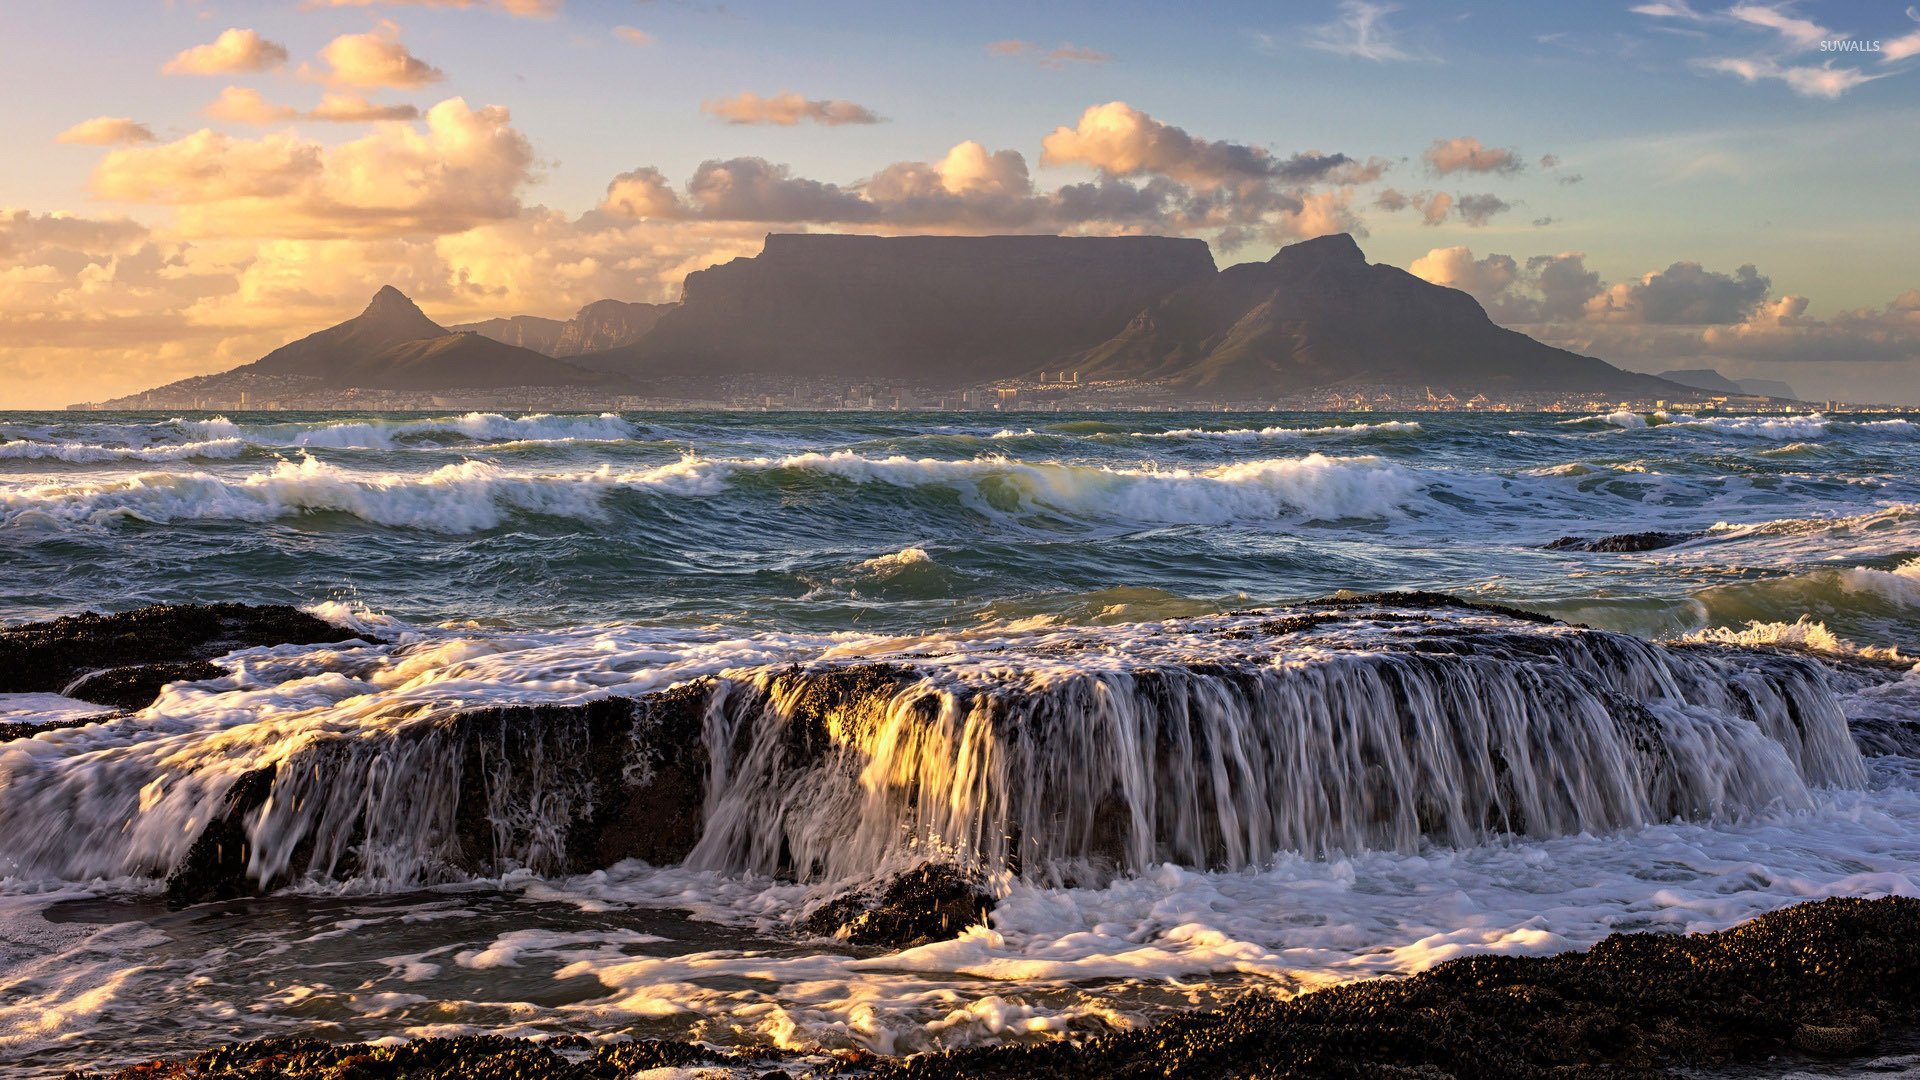 Cape Town [3] wallpaper   Nature wallpapers   37618 1920x1080